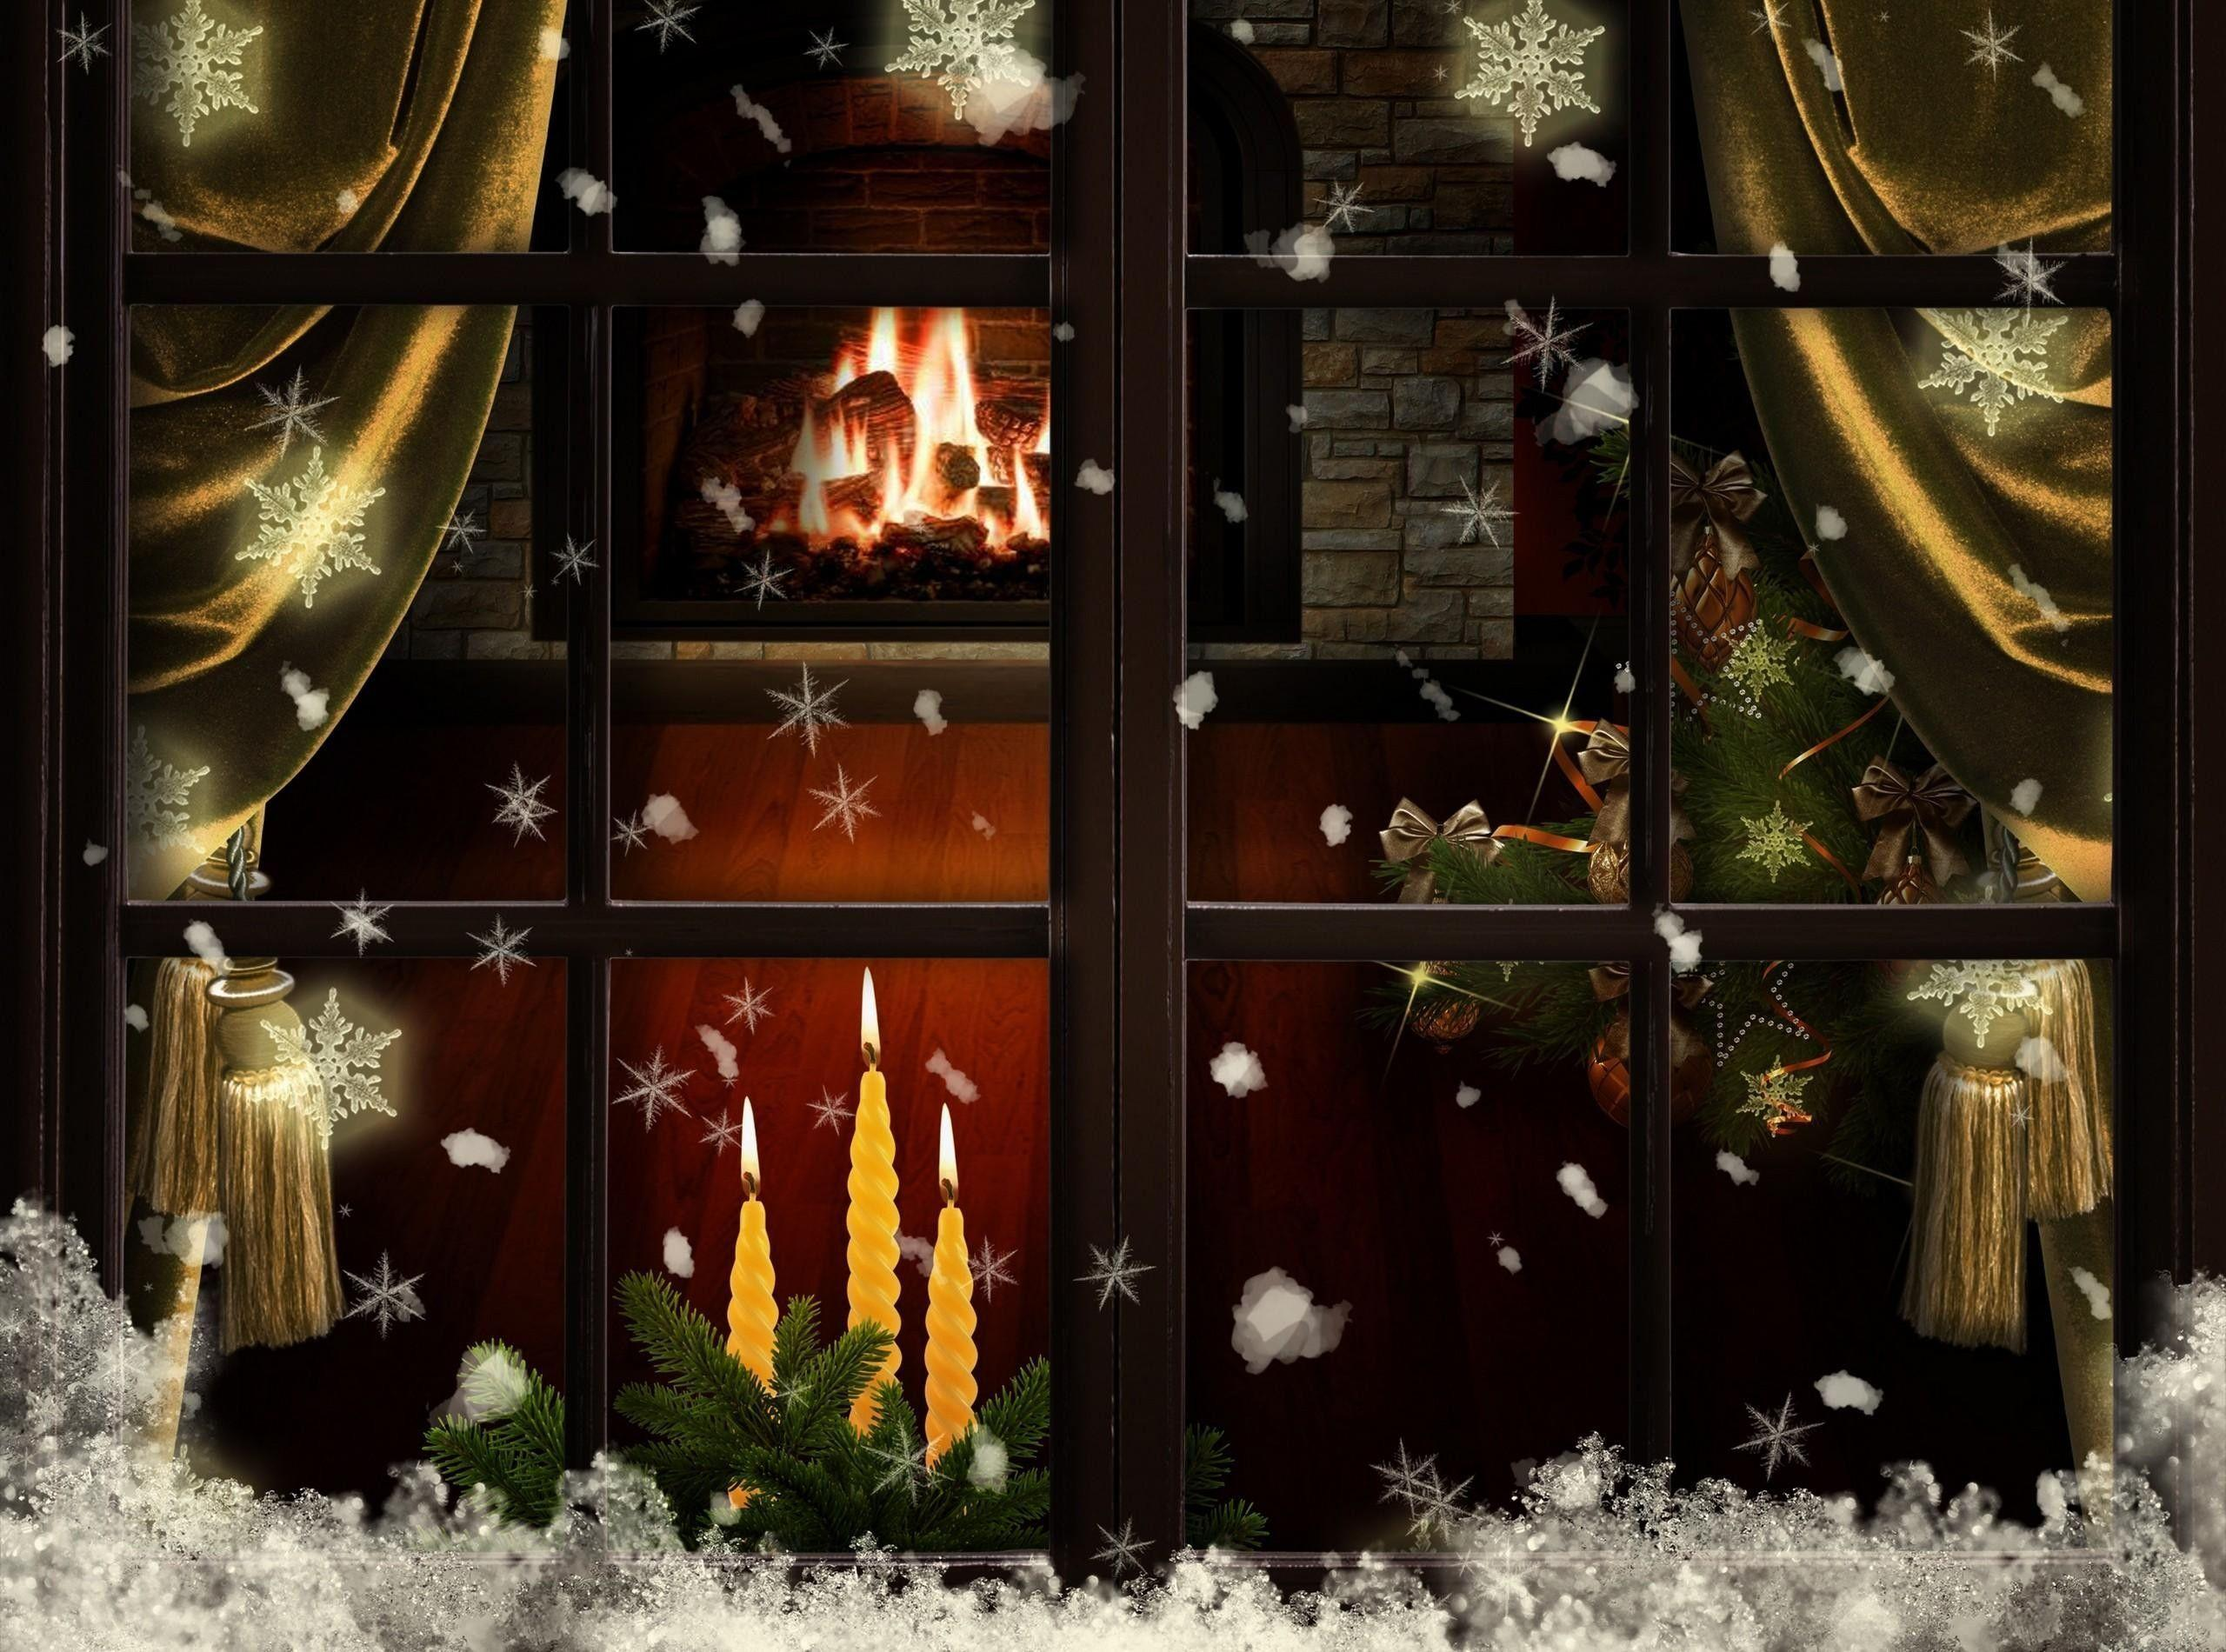 Image For > Cozy Fireplace Wallpapers